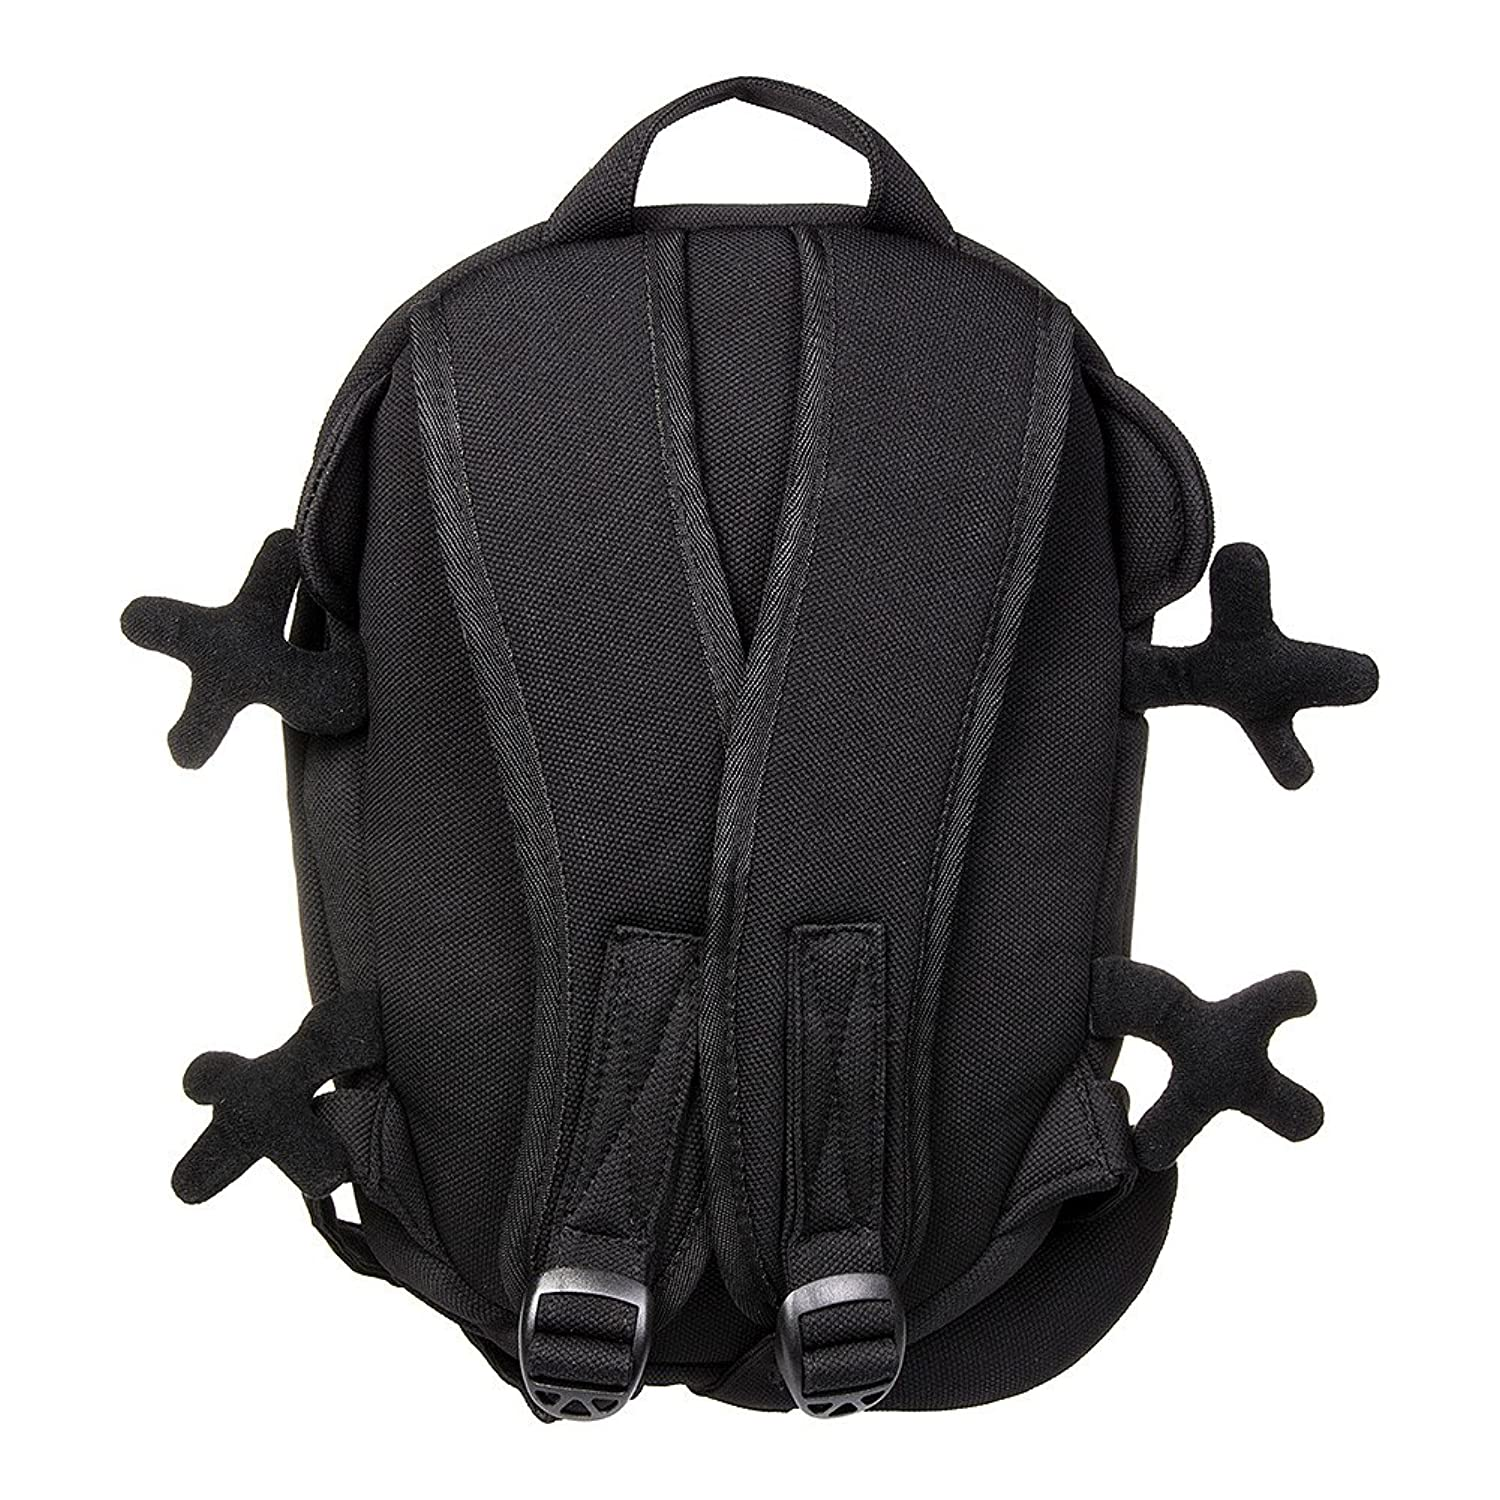 Poizen Unisex-adults Industries Rino Backpack (Black): Amazon.co.uk: Shoes  & Bags